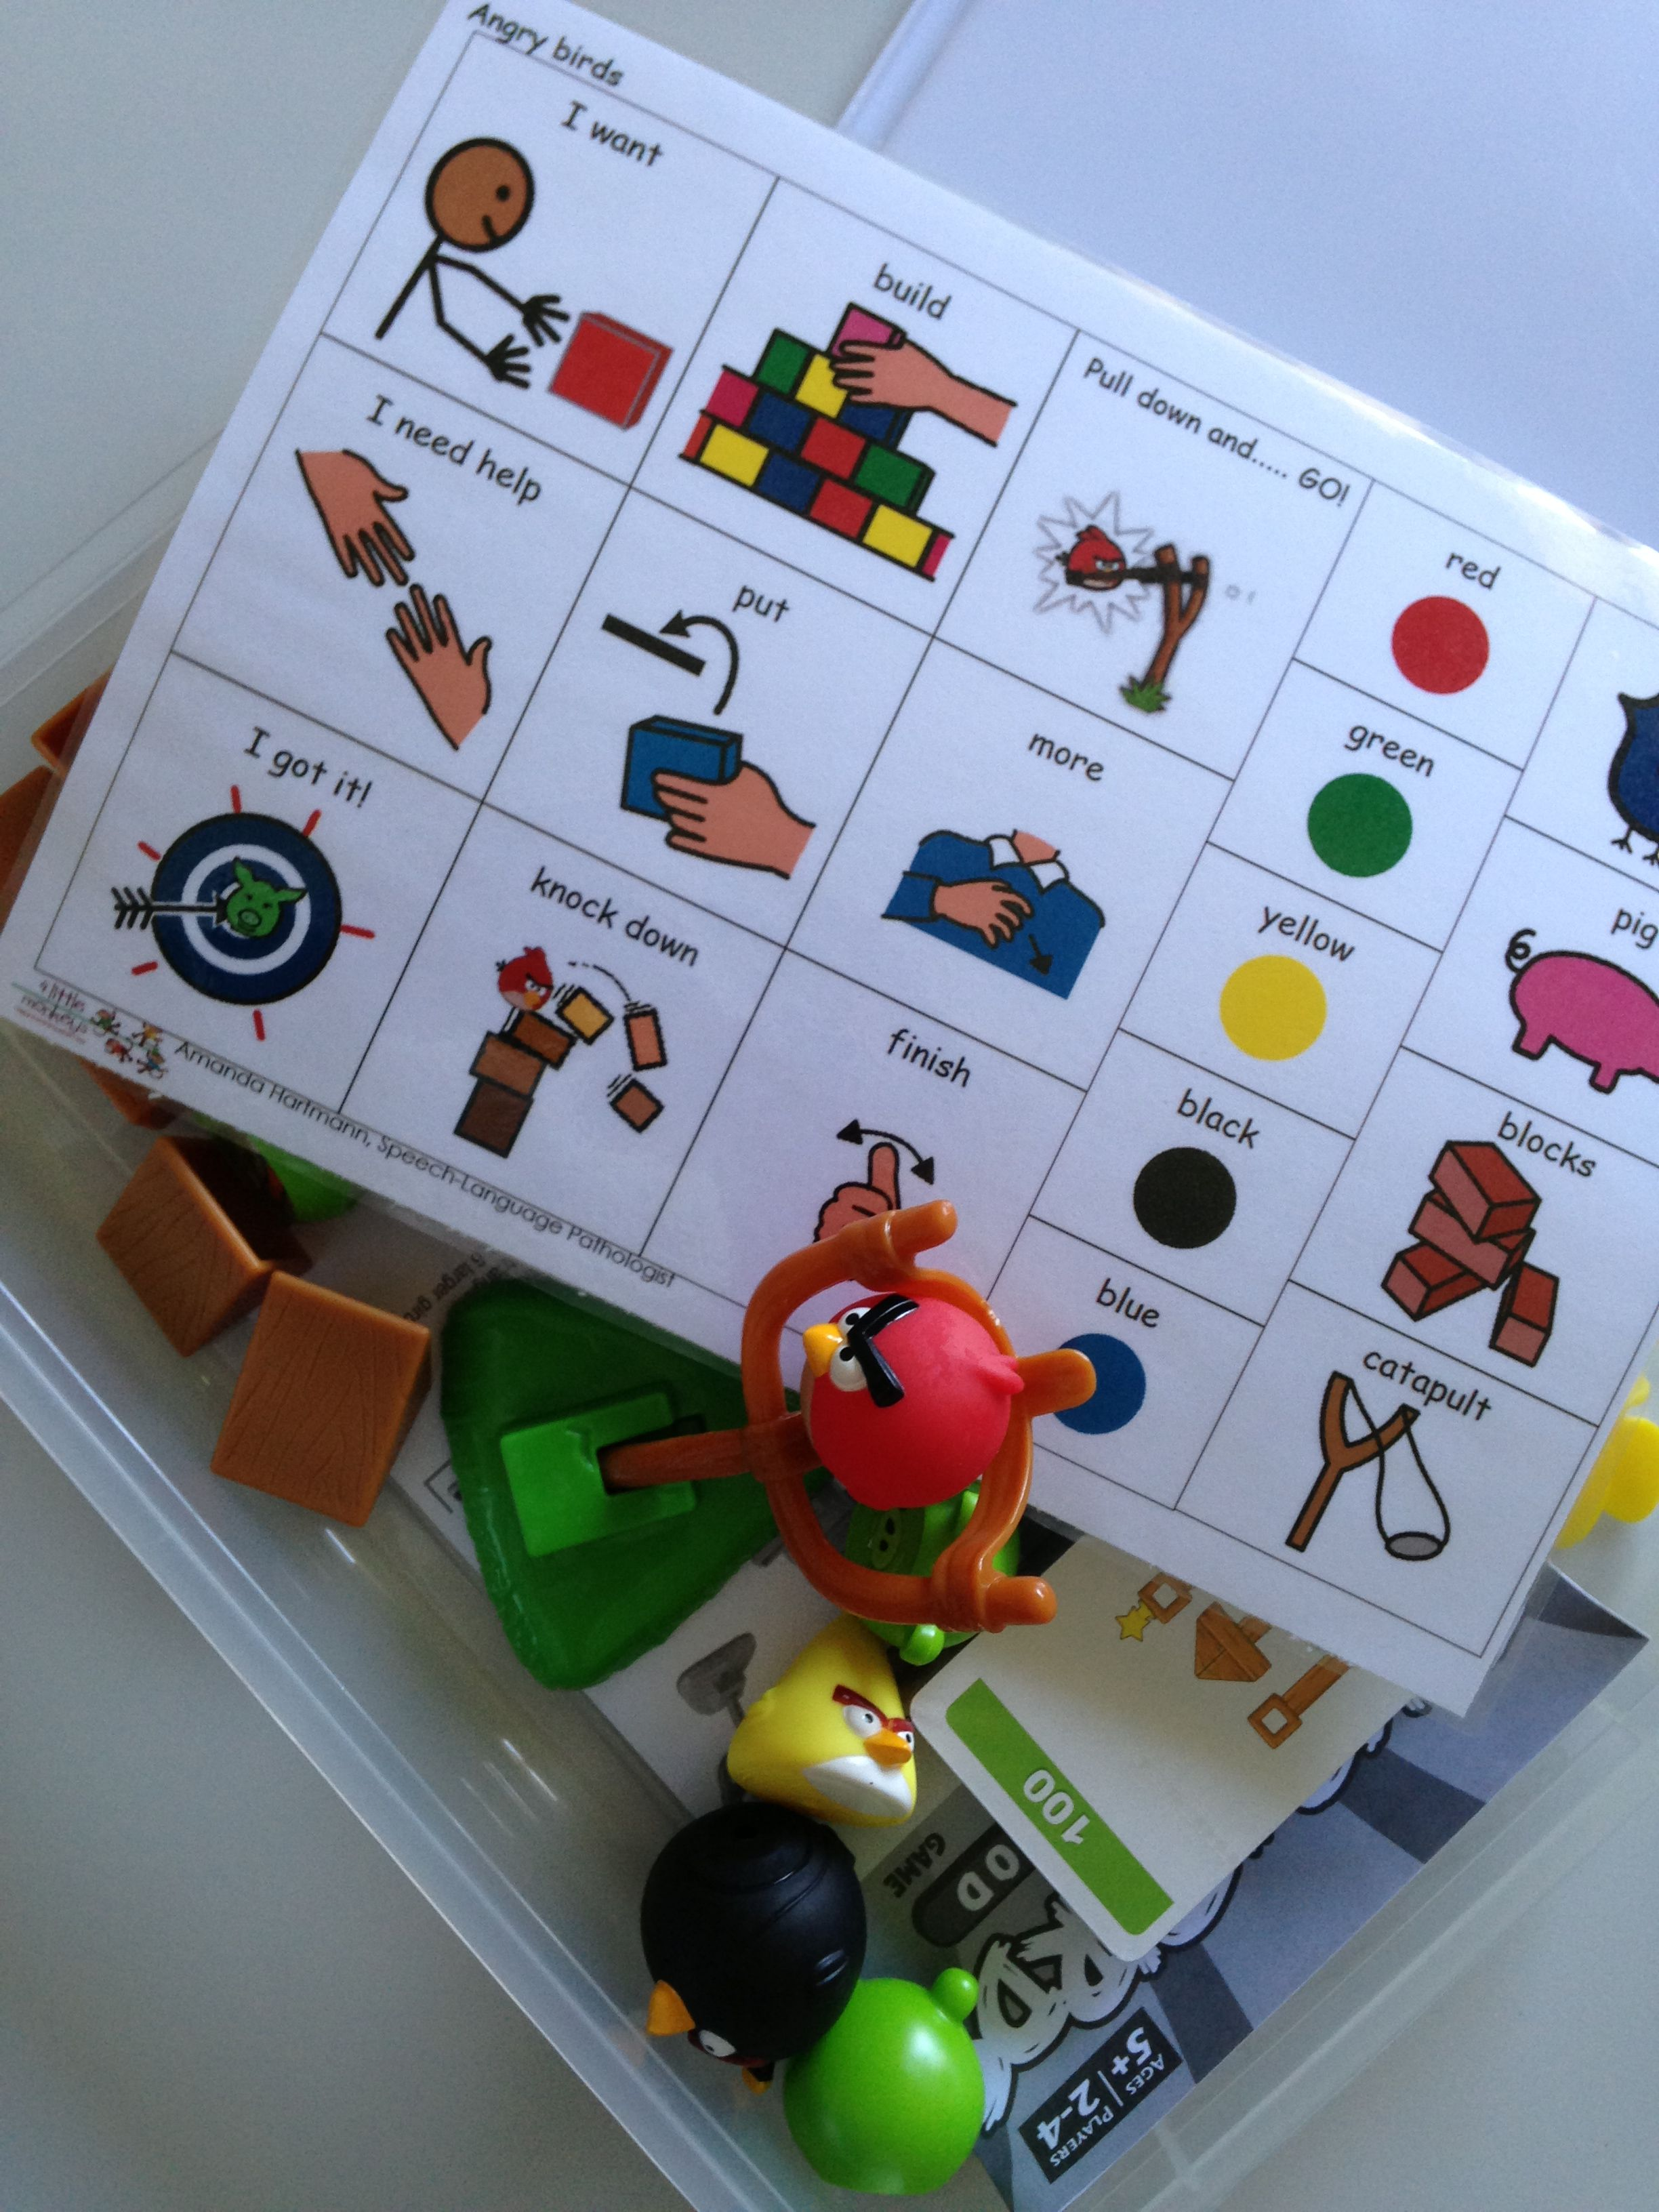 Aided Language Stimulation Board Stored With The Game